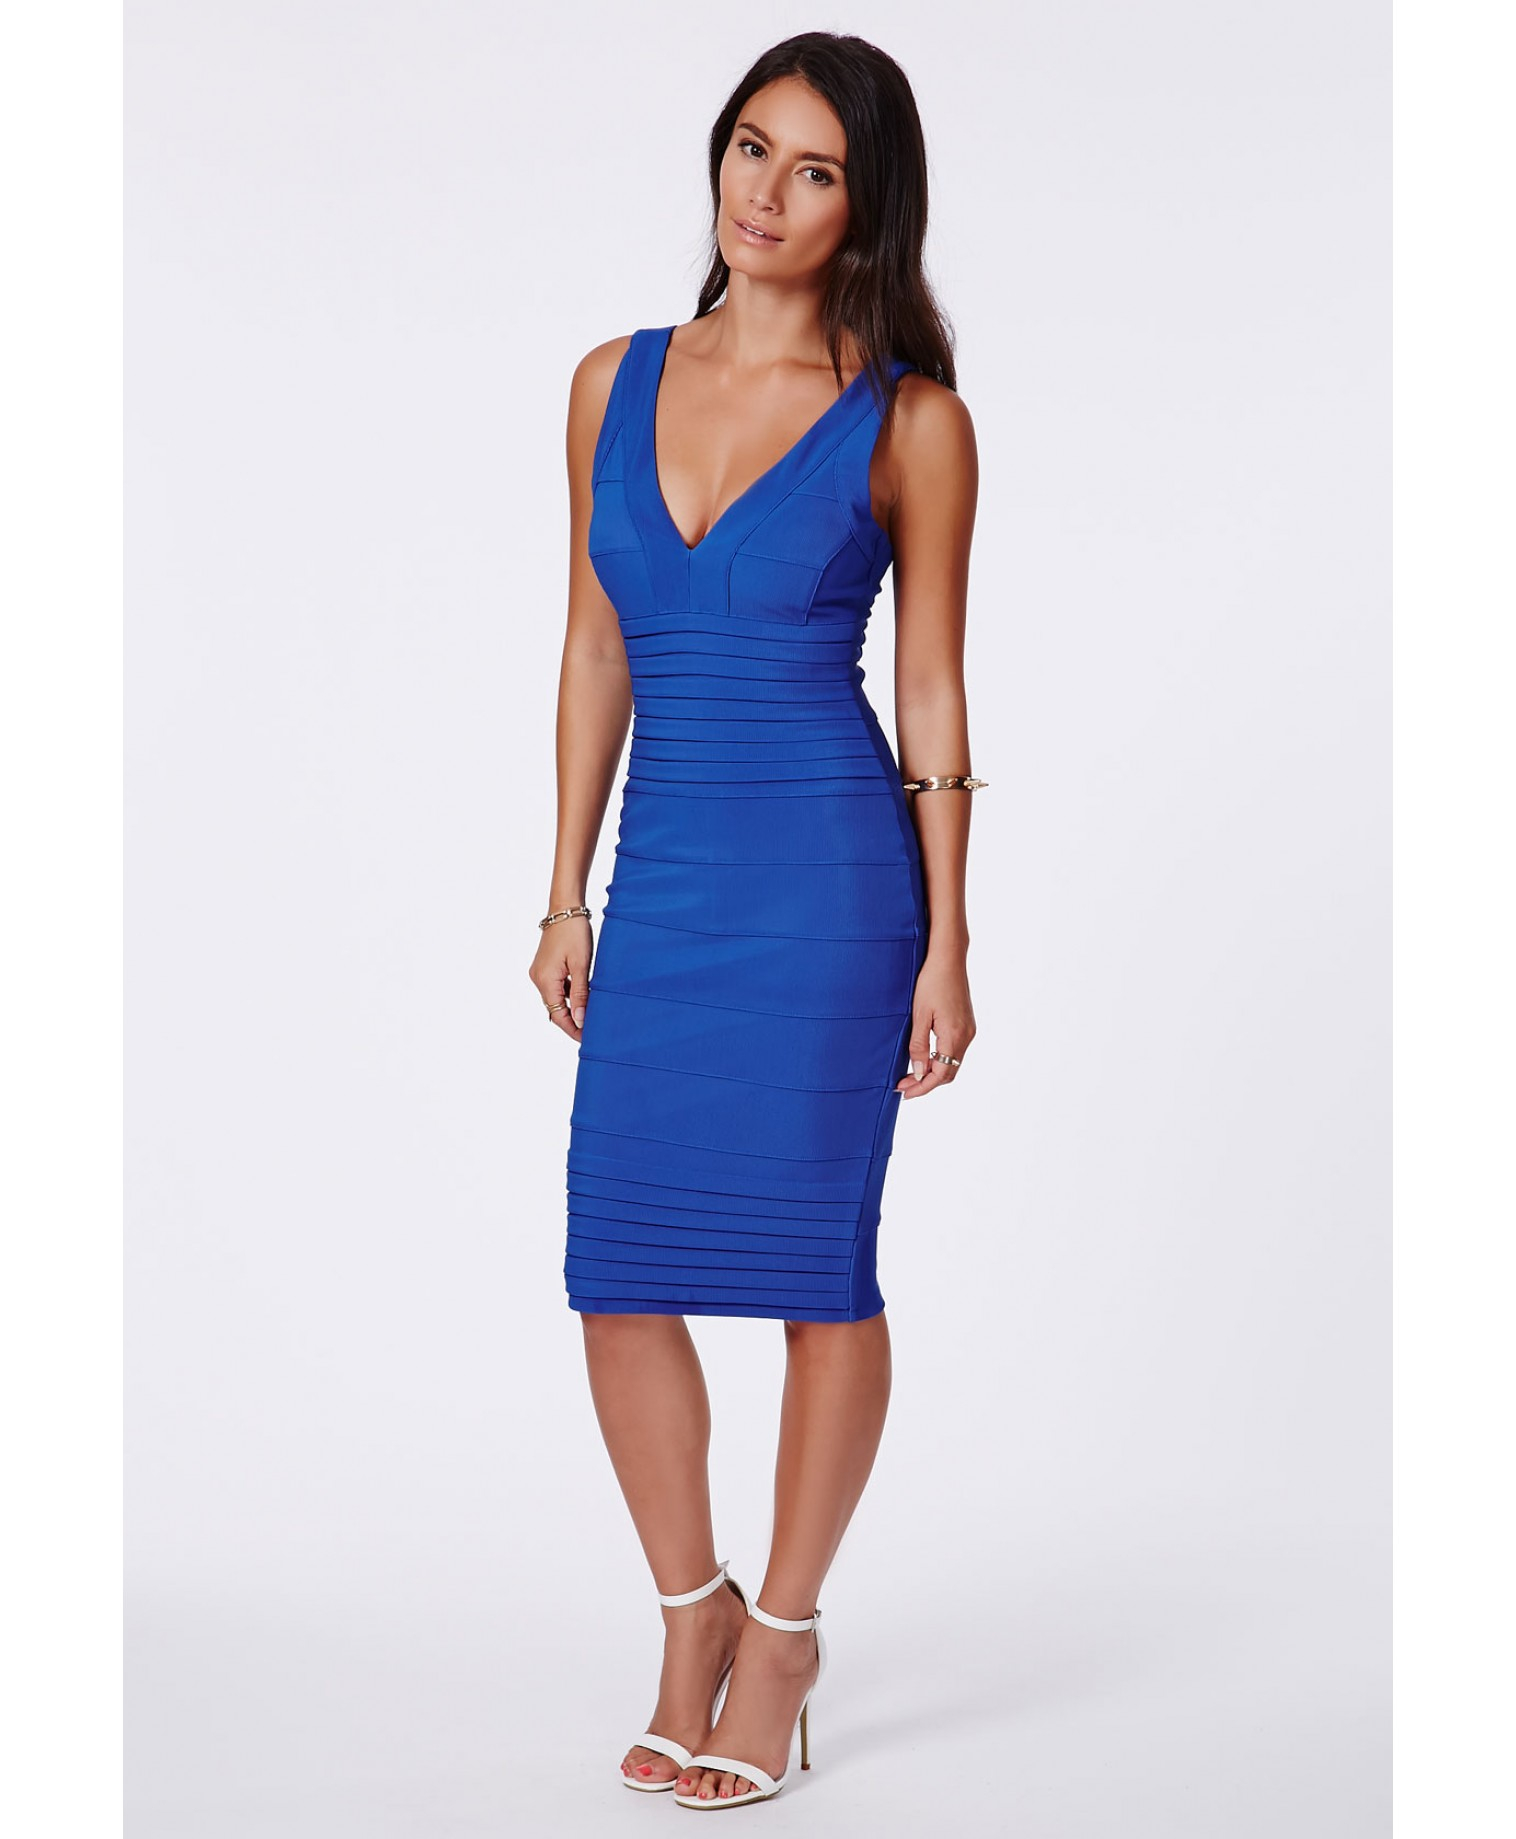 Missguided Mulan Cobalt Blue Bandage Bodycon Midi Dress in ...